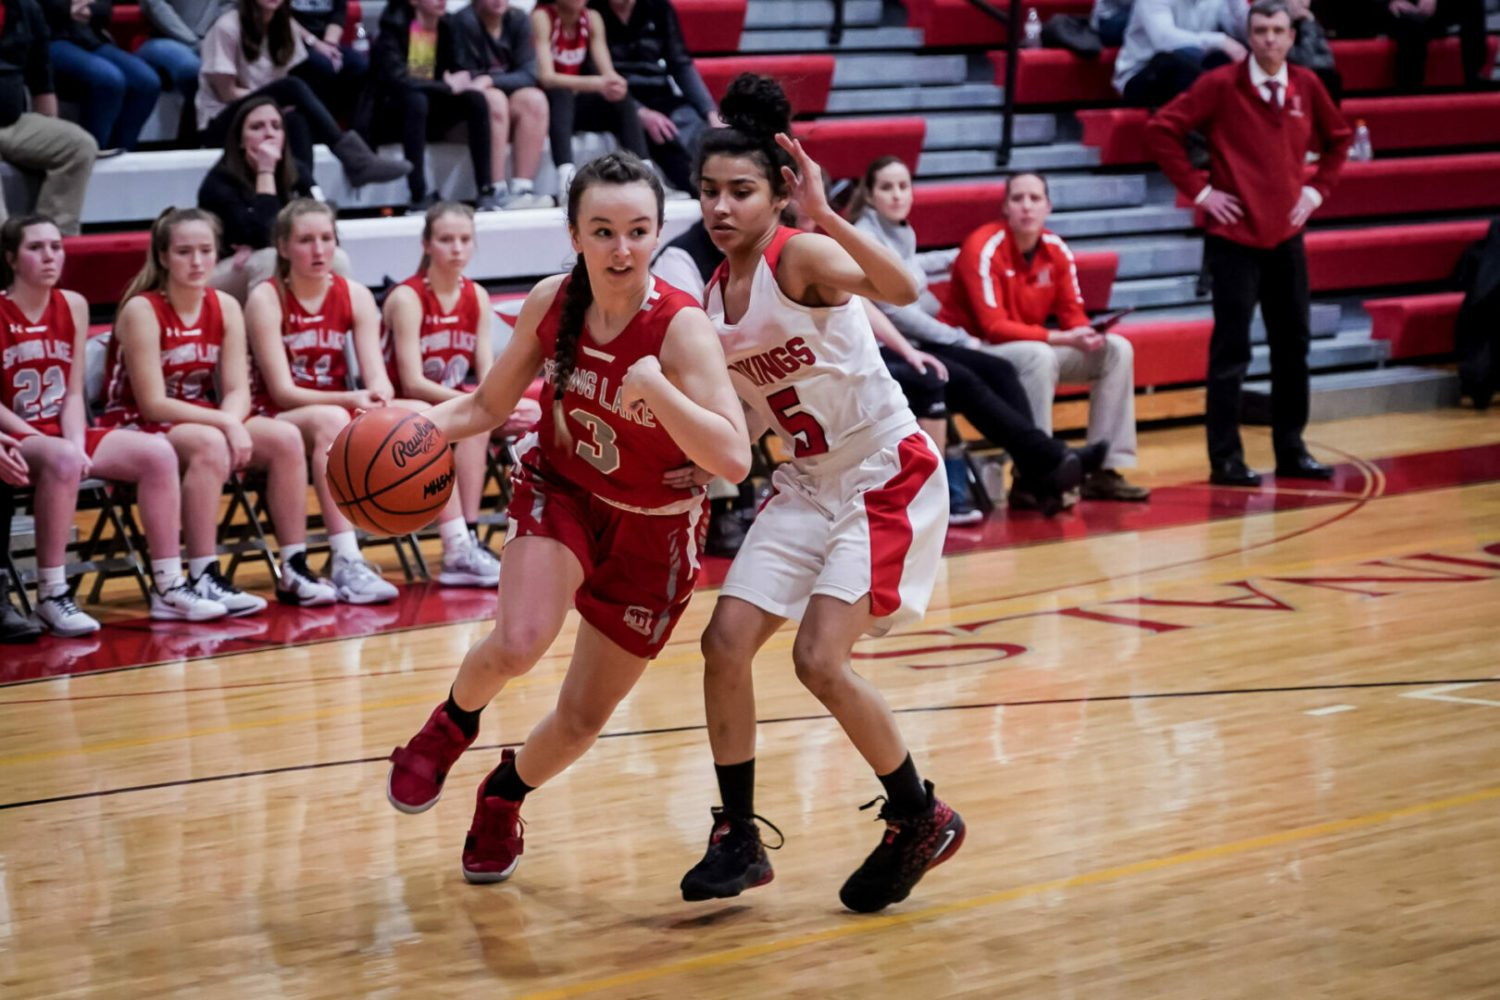 Spring Lake girls basketball team outlasts Whitehall to advance to Div. 2 district finals